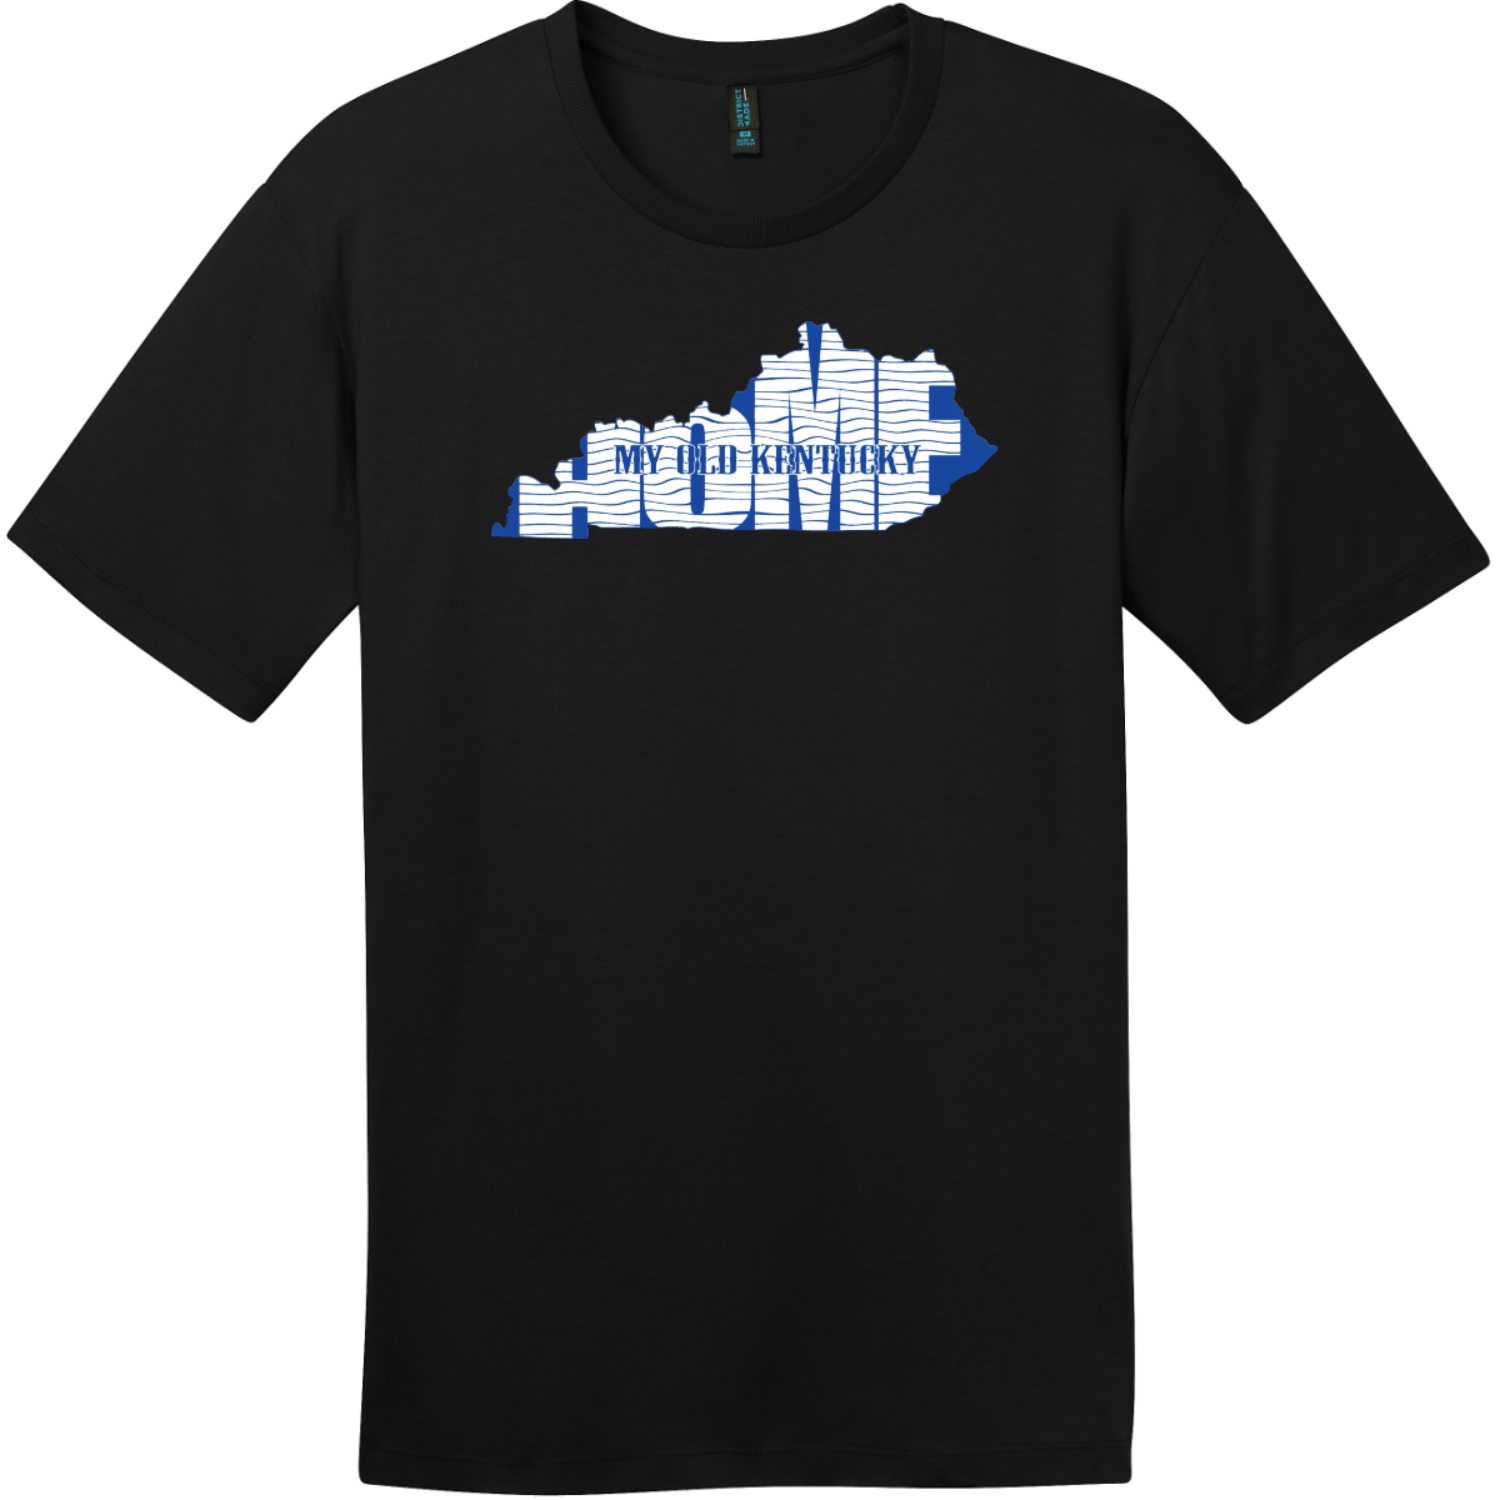 My Old Kentucky Home State T-Shirt Jet Black District Perfect Weight Tee DT104